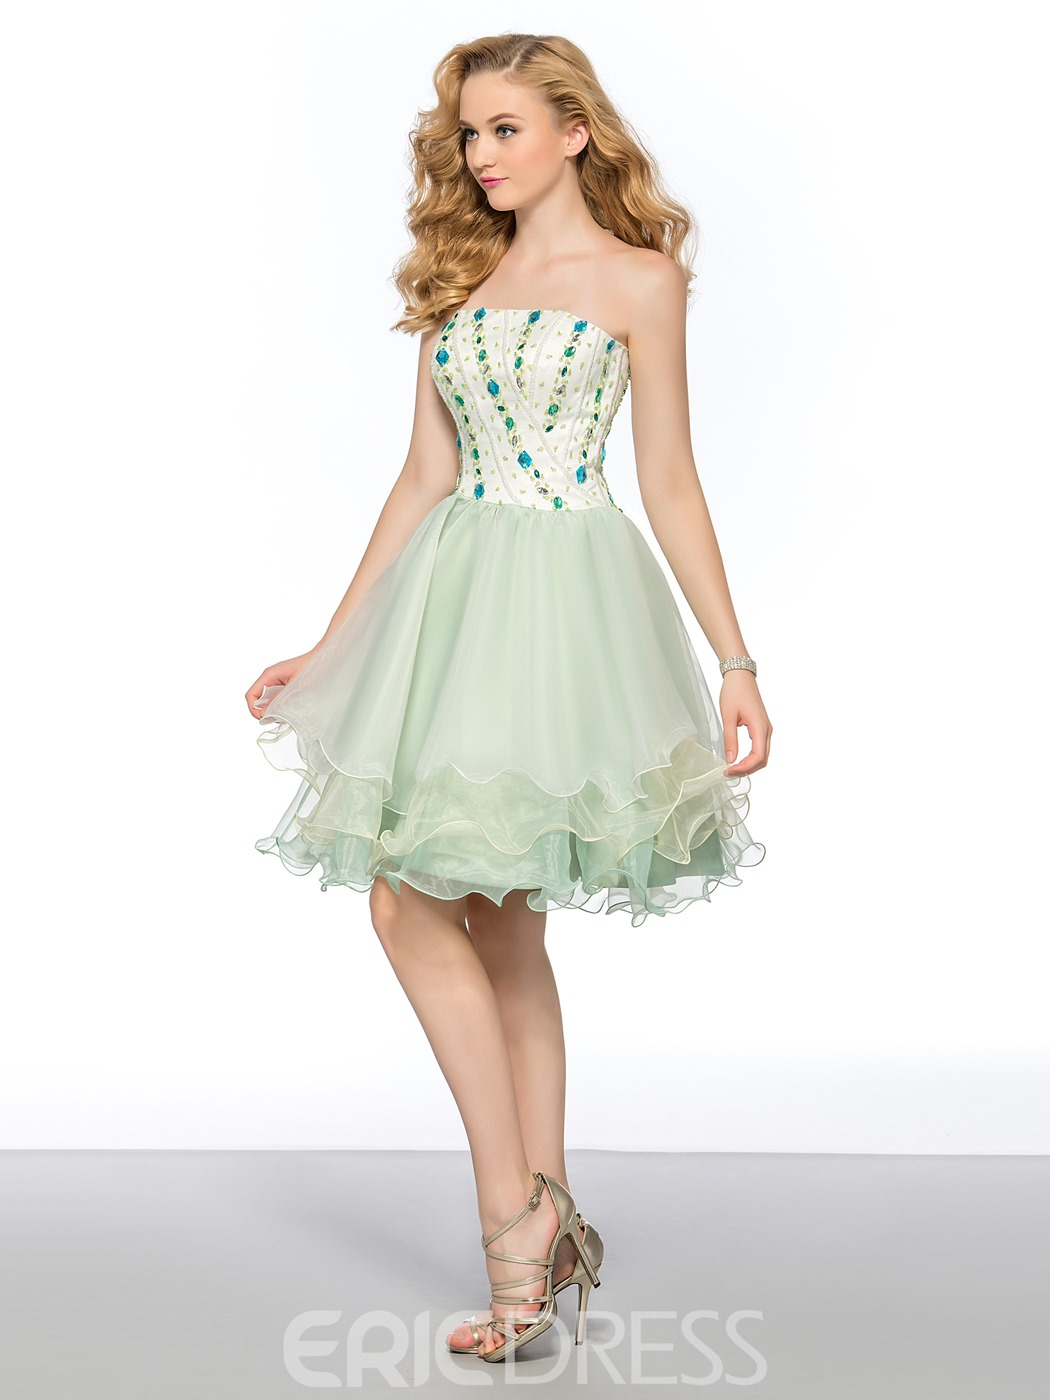 Charming A-Line Strapless Rhinestone Short Homecoming Dress